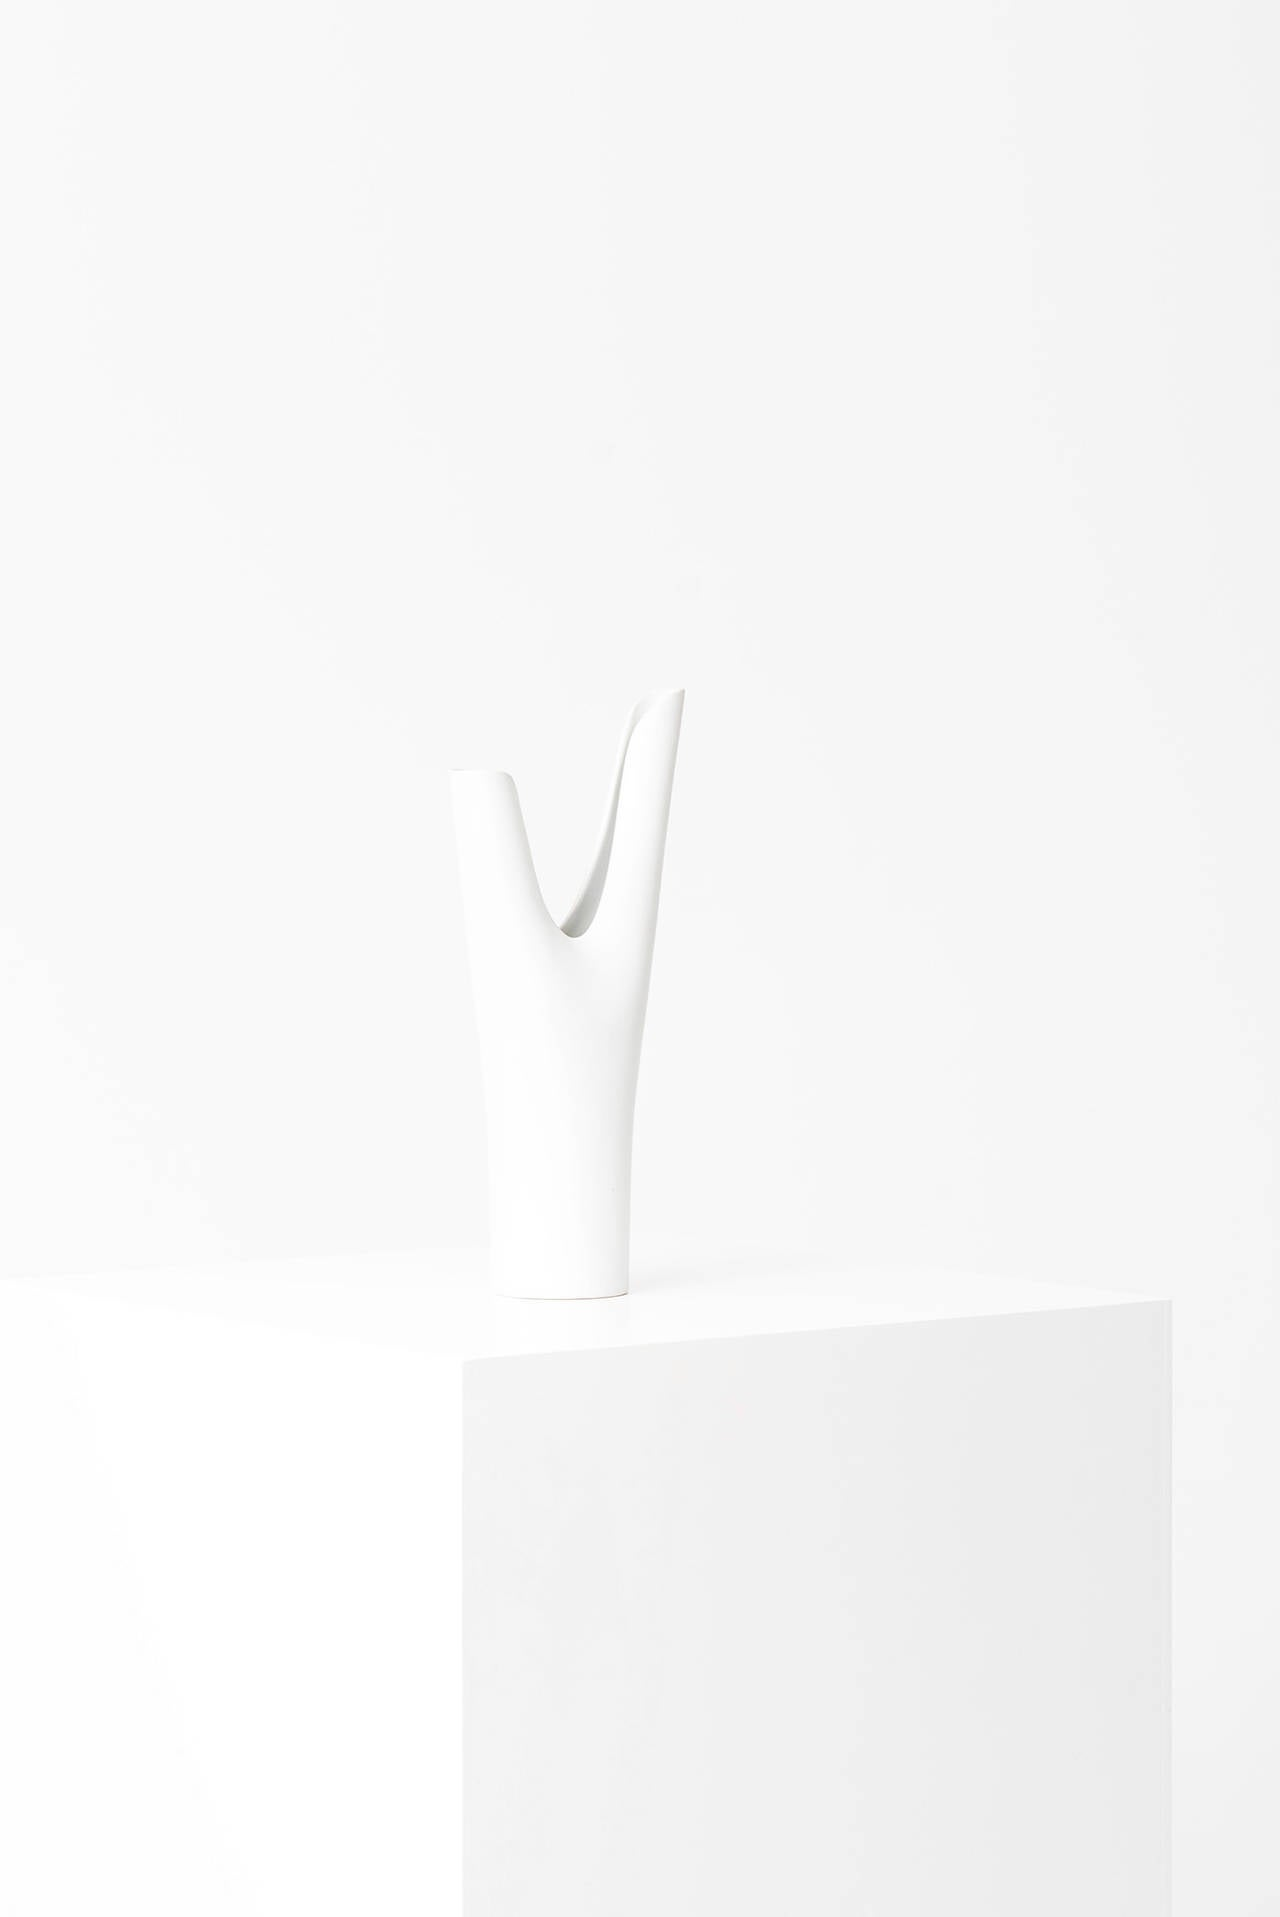 Tall ceramic vase model Veckla designed by Stig Lindberg. Produced by Gustavsberg in Sweden.